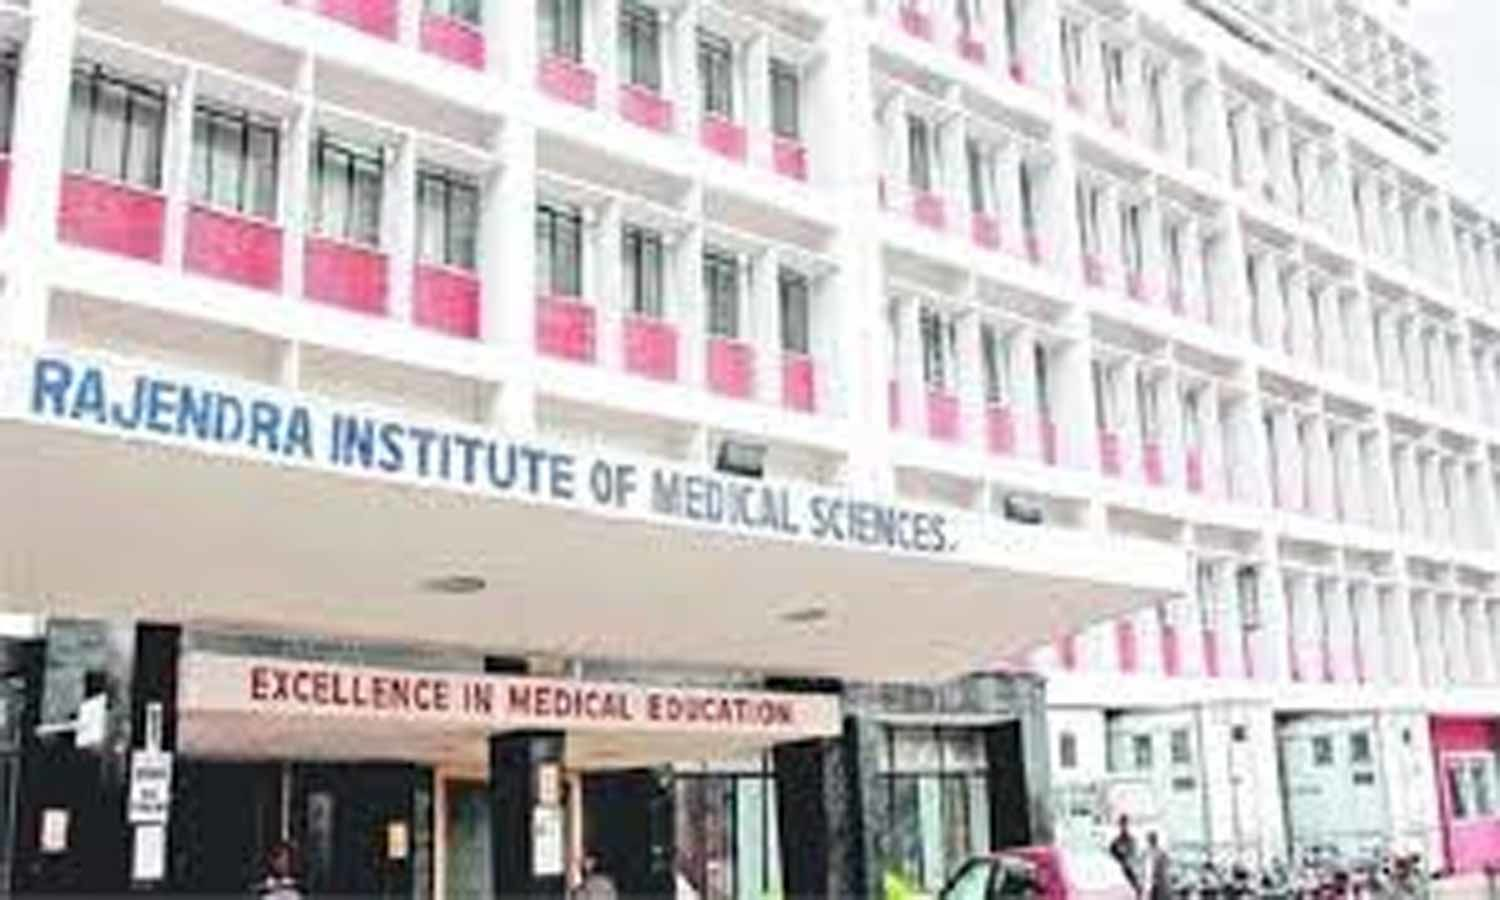 Jharkhand to upgrade Rajendra Institute of Medical Sciences into its first medical university